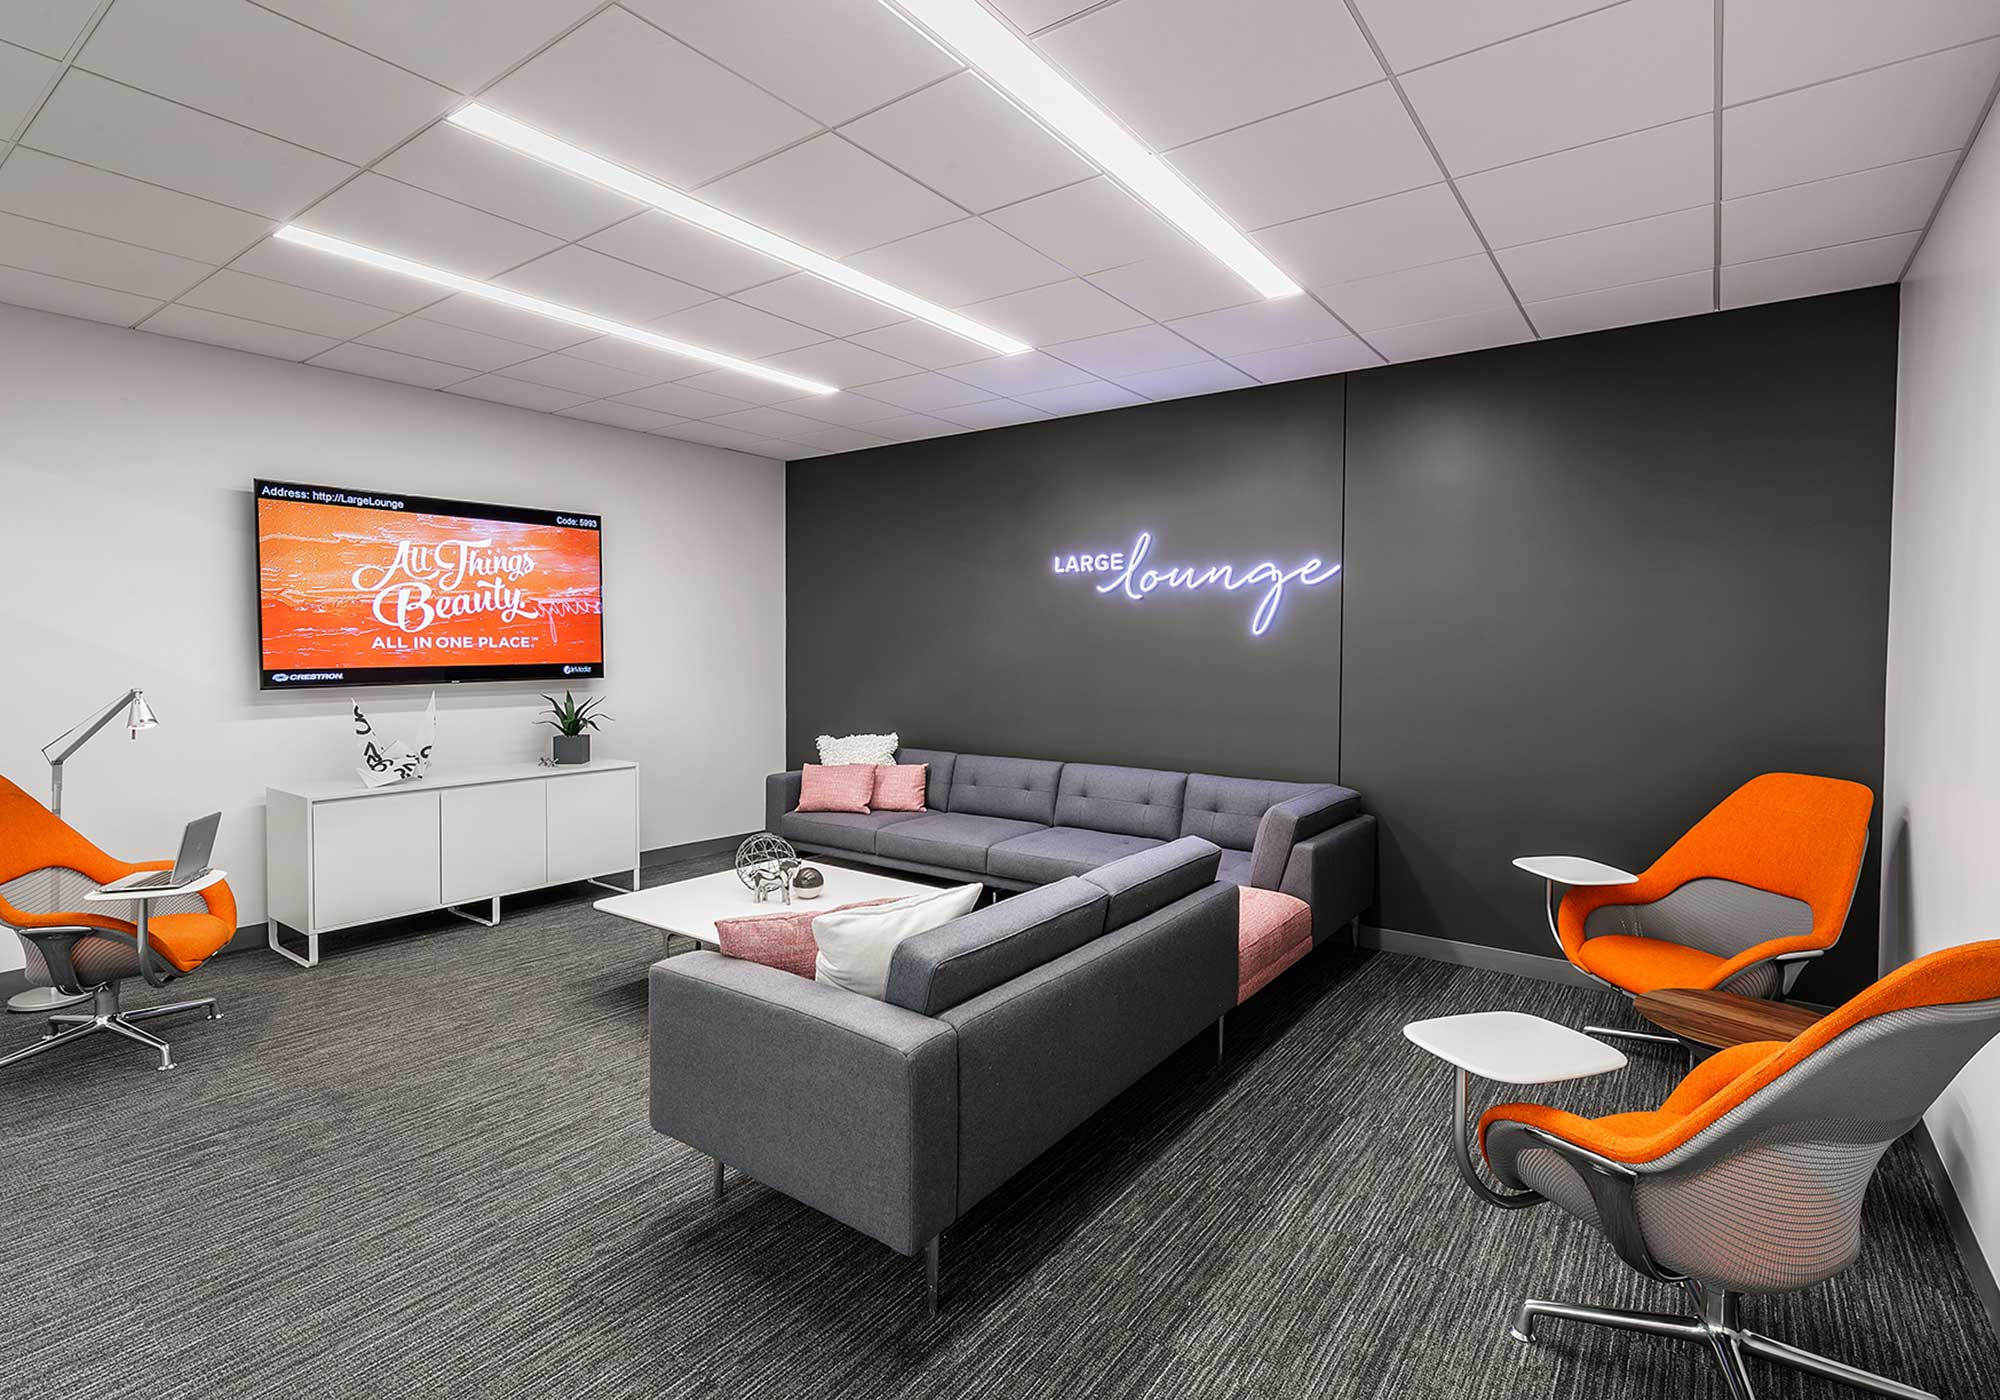 Lounge room with a large flat screen television